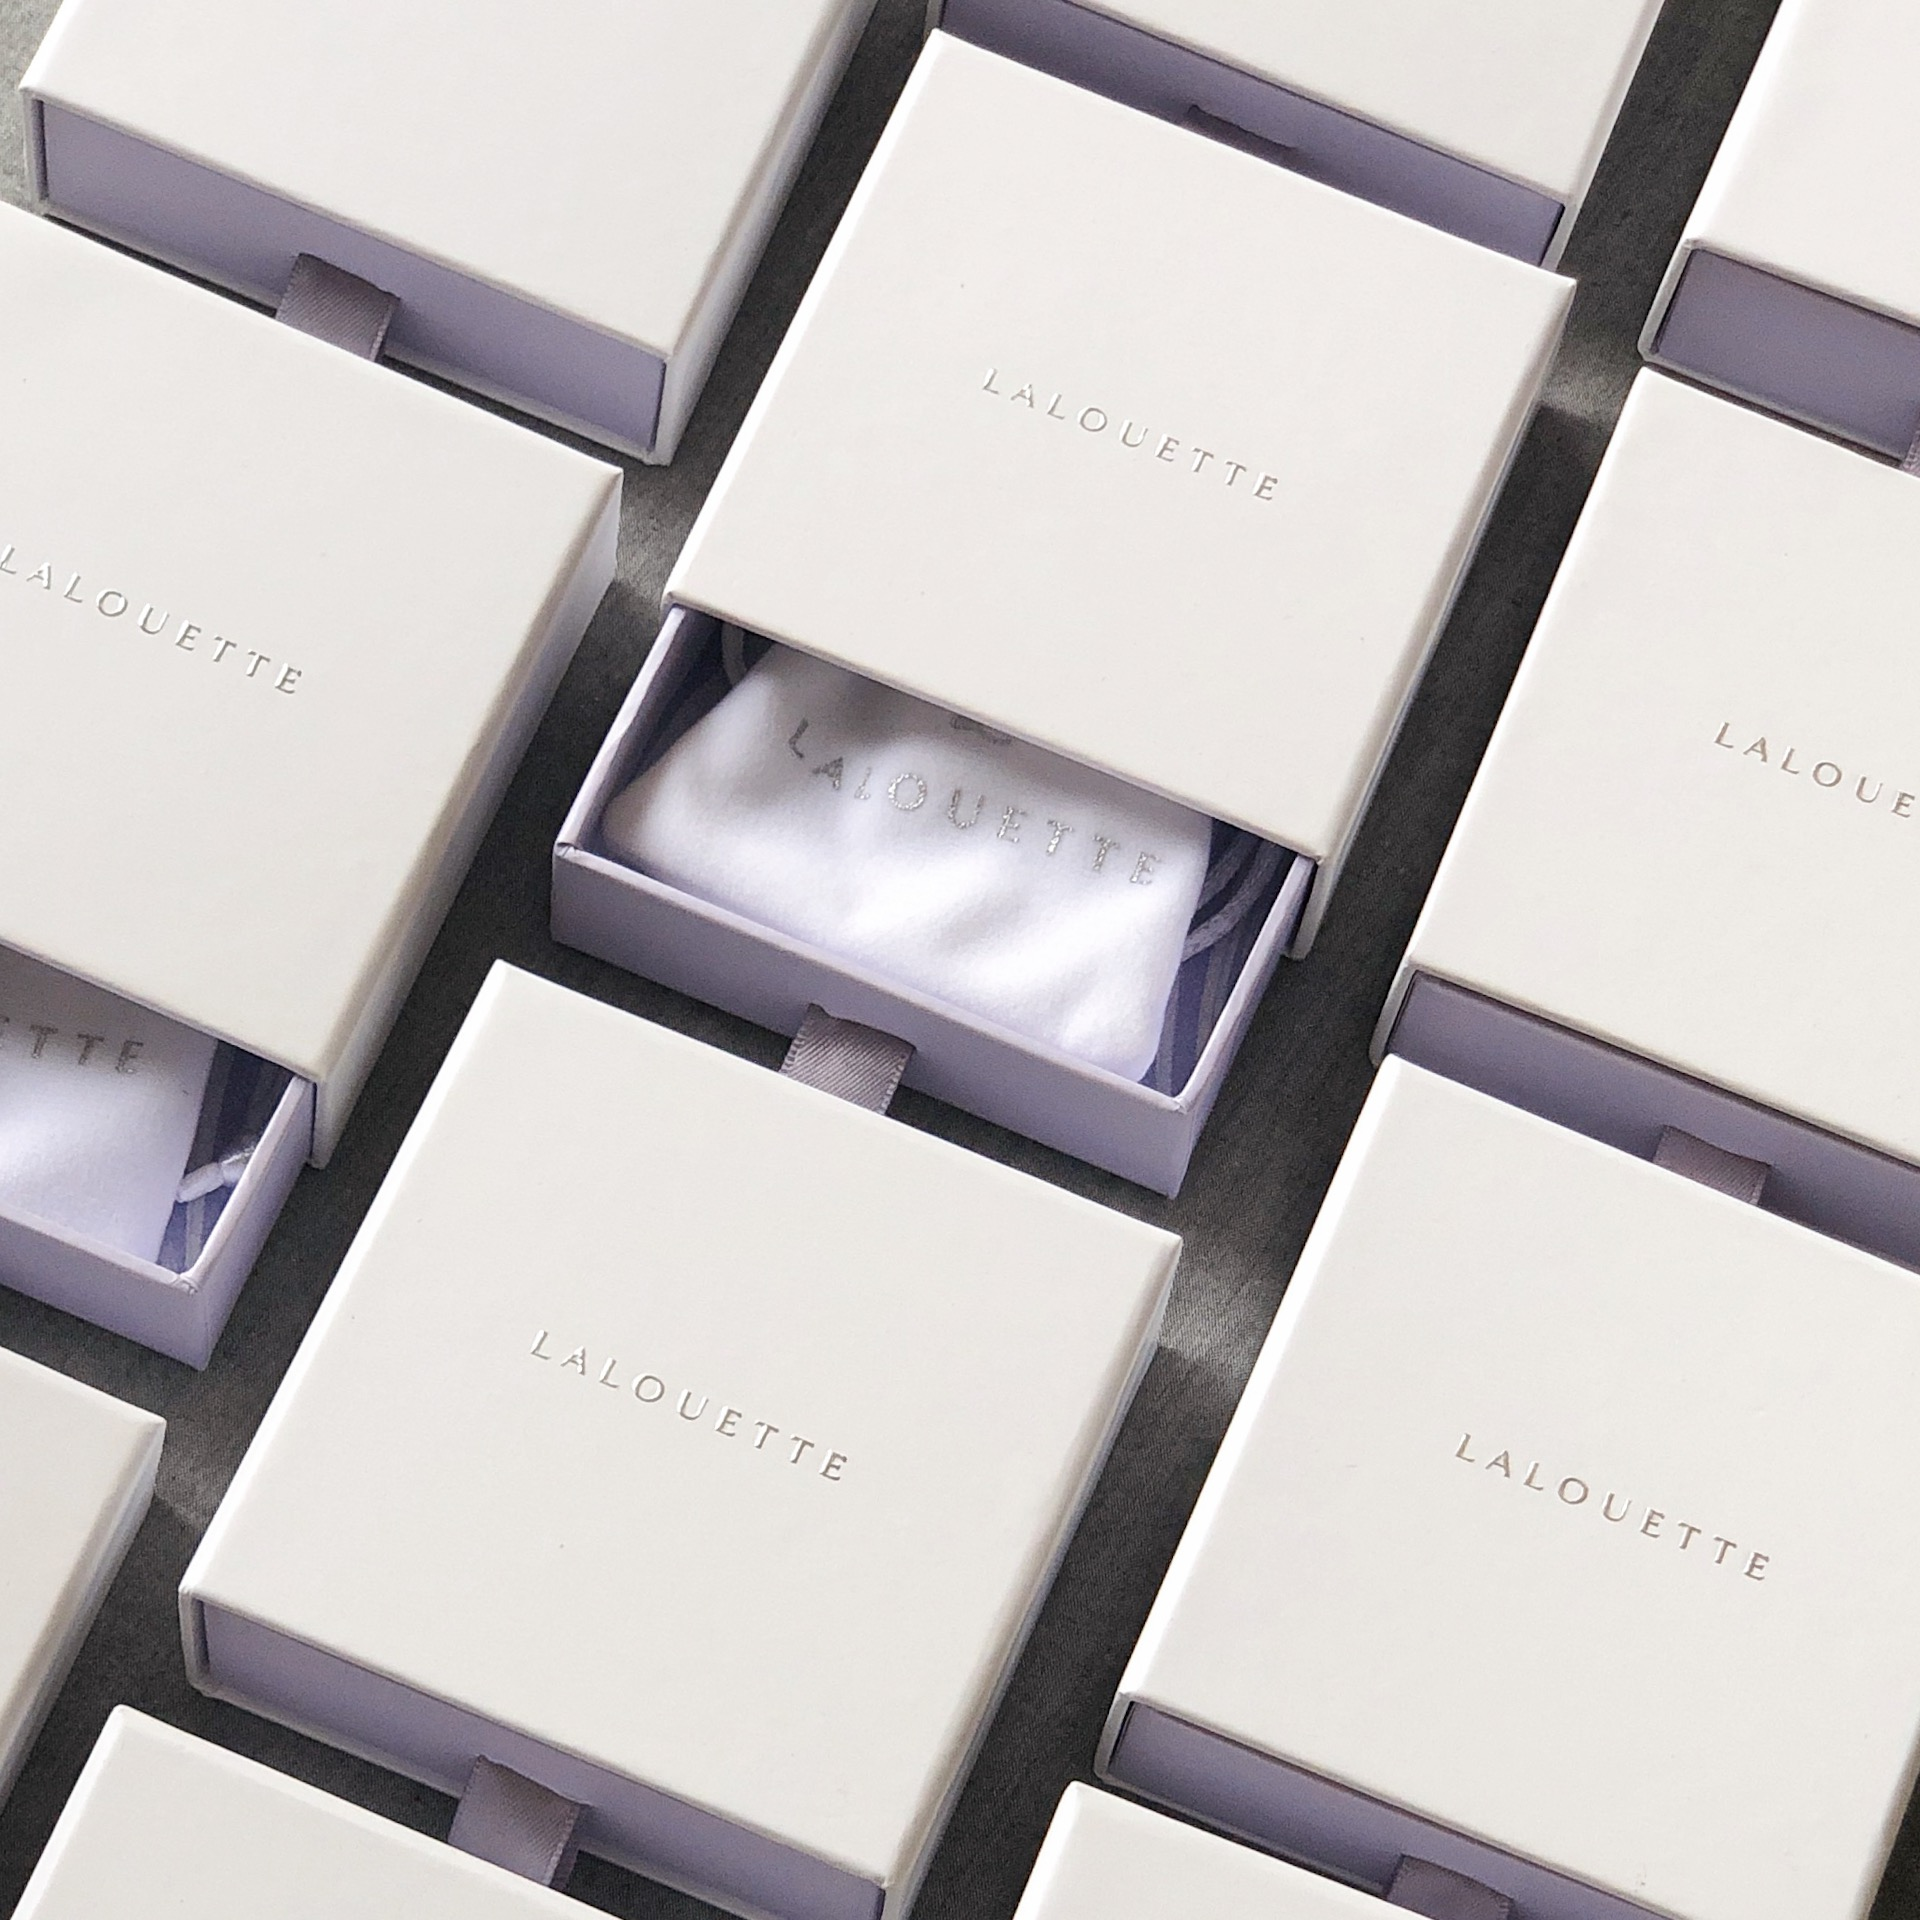 Lalouette Scarf Ring in Packaging